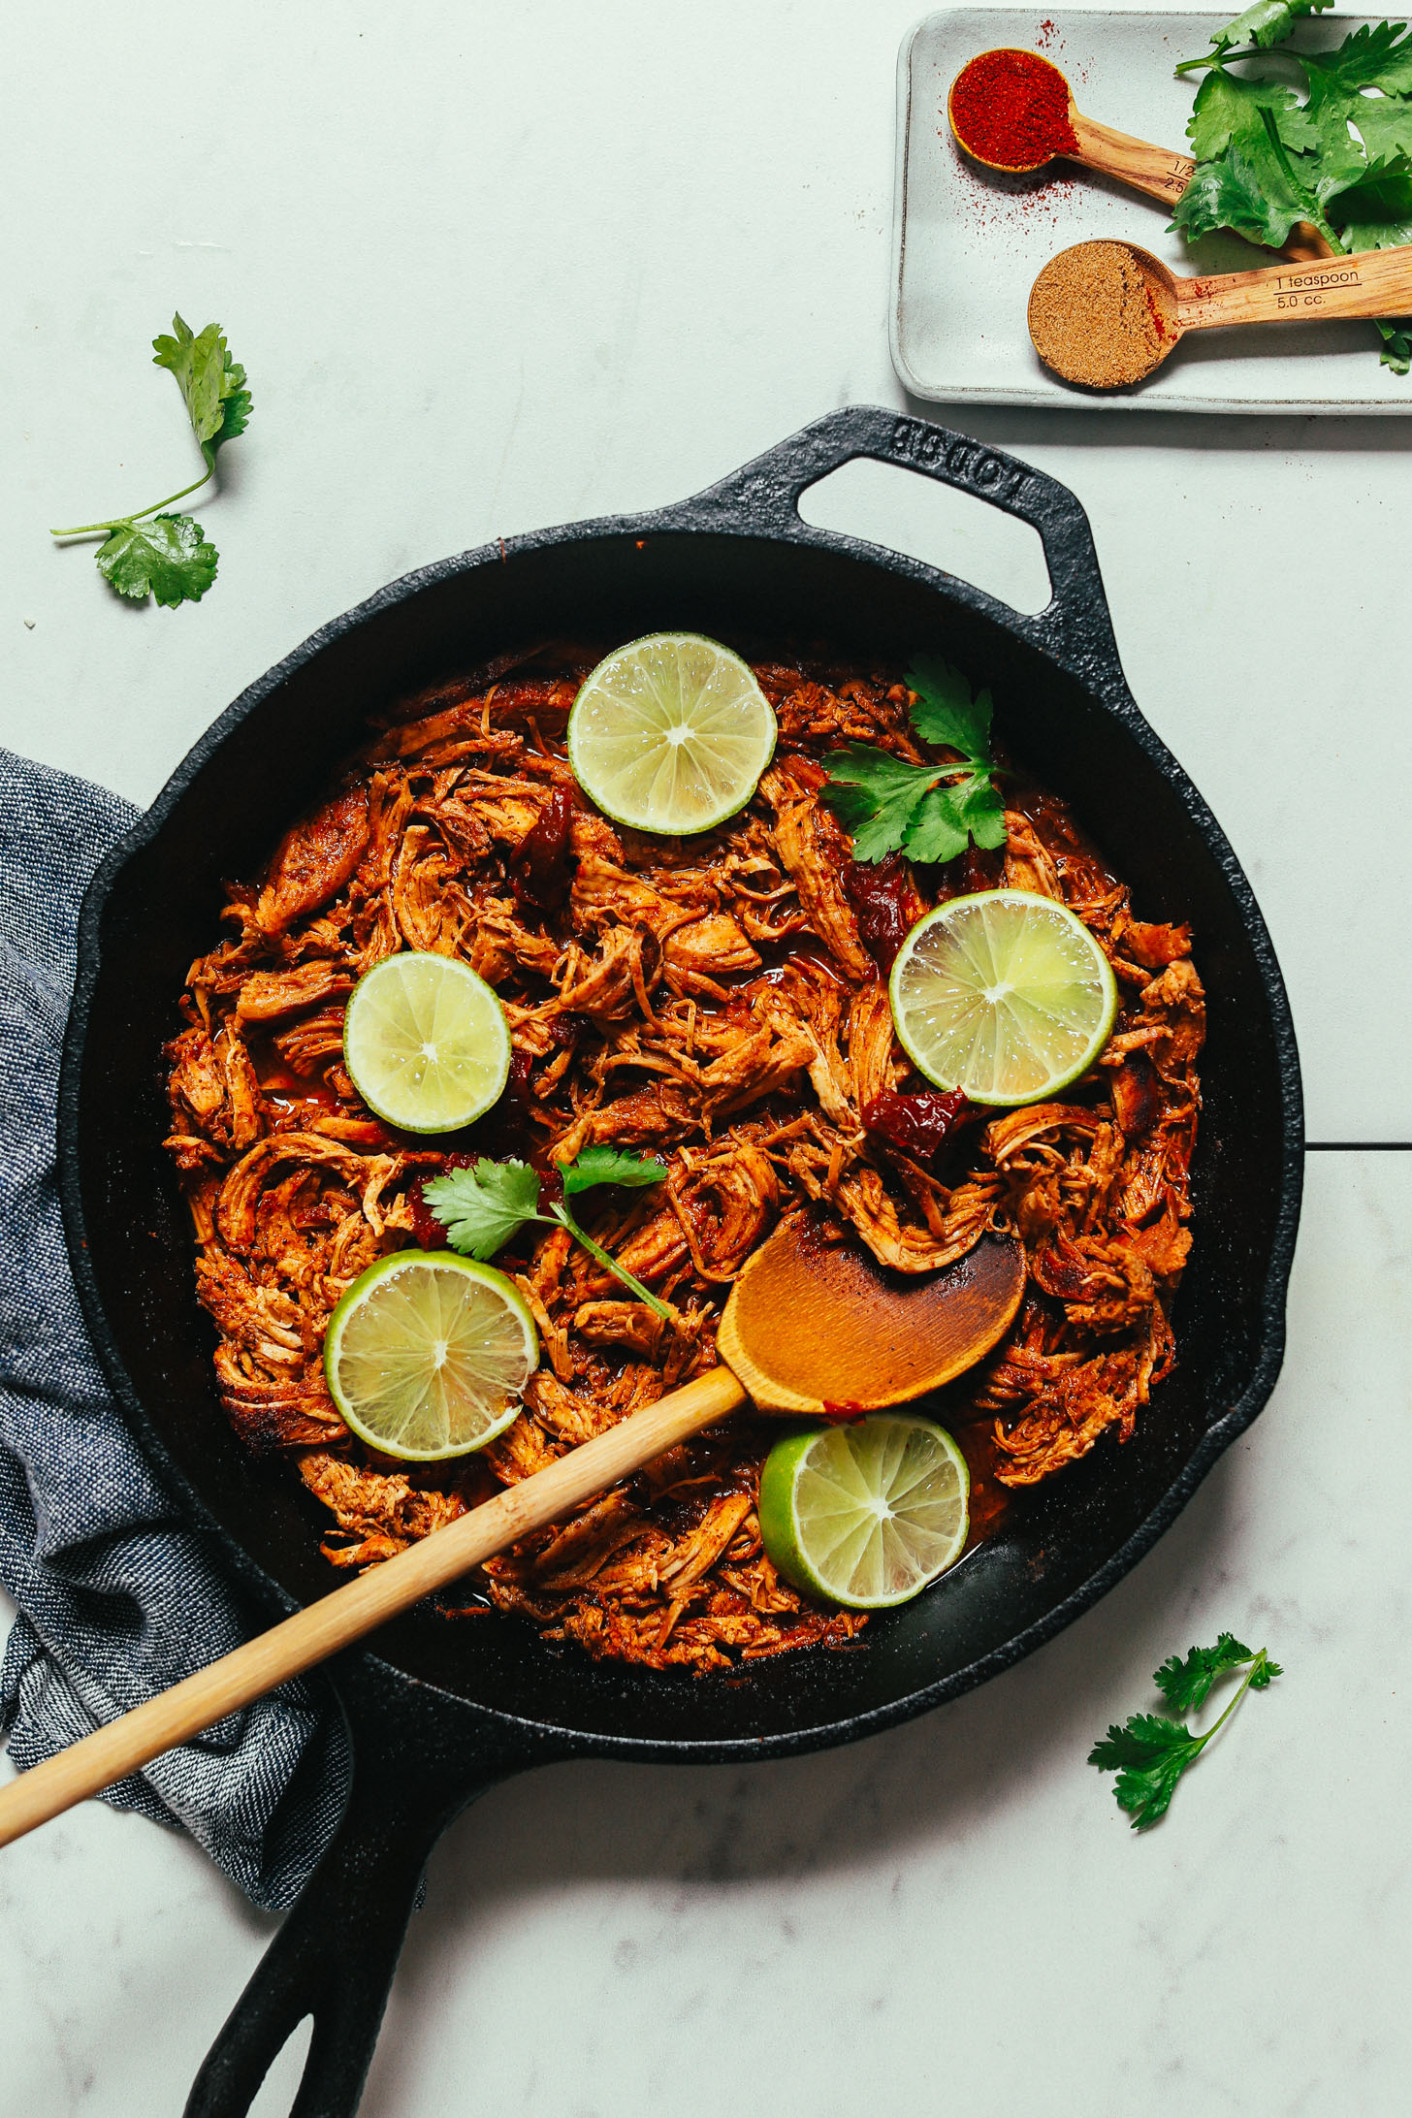 11-Pan Mexican Shredded Chicken | Minimalist Baker Recipes - recipes made with shredded chicken